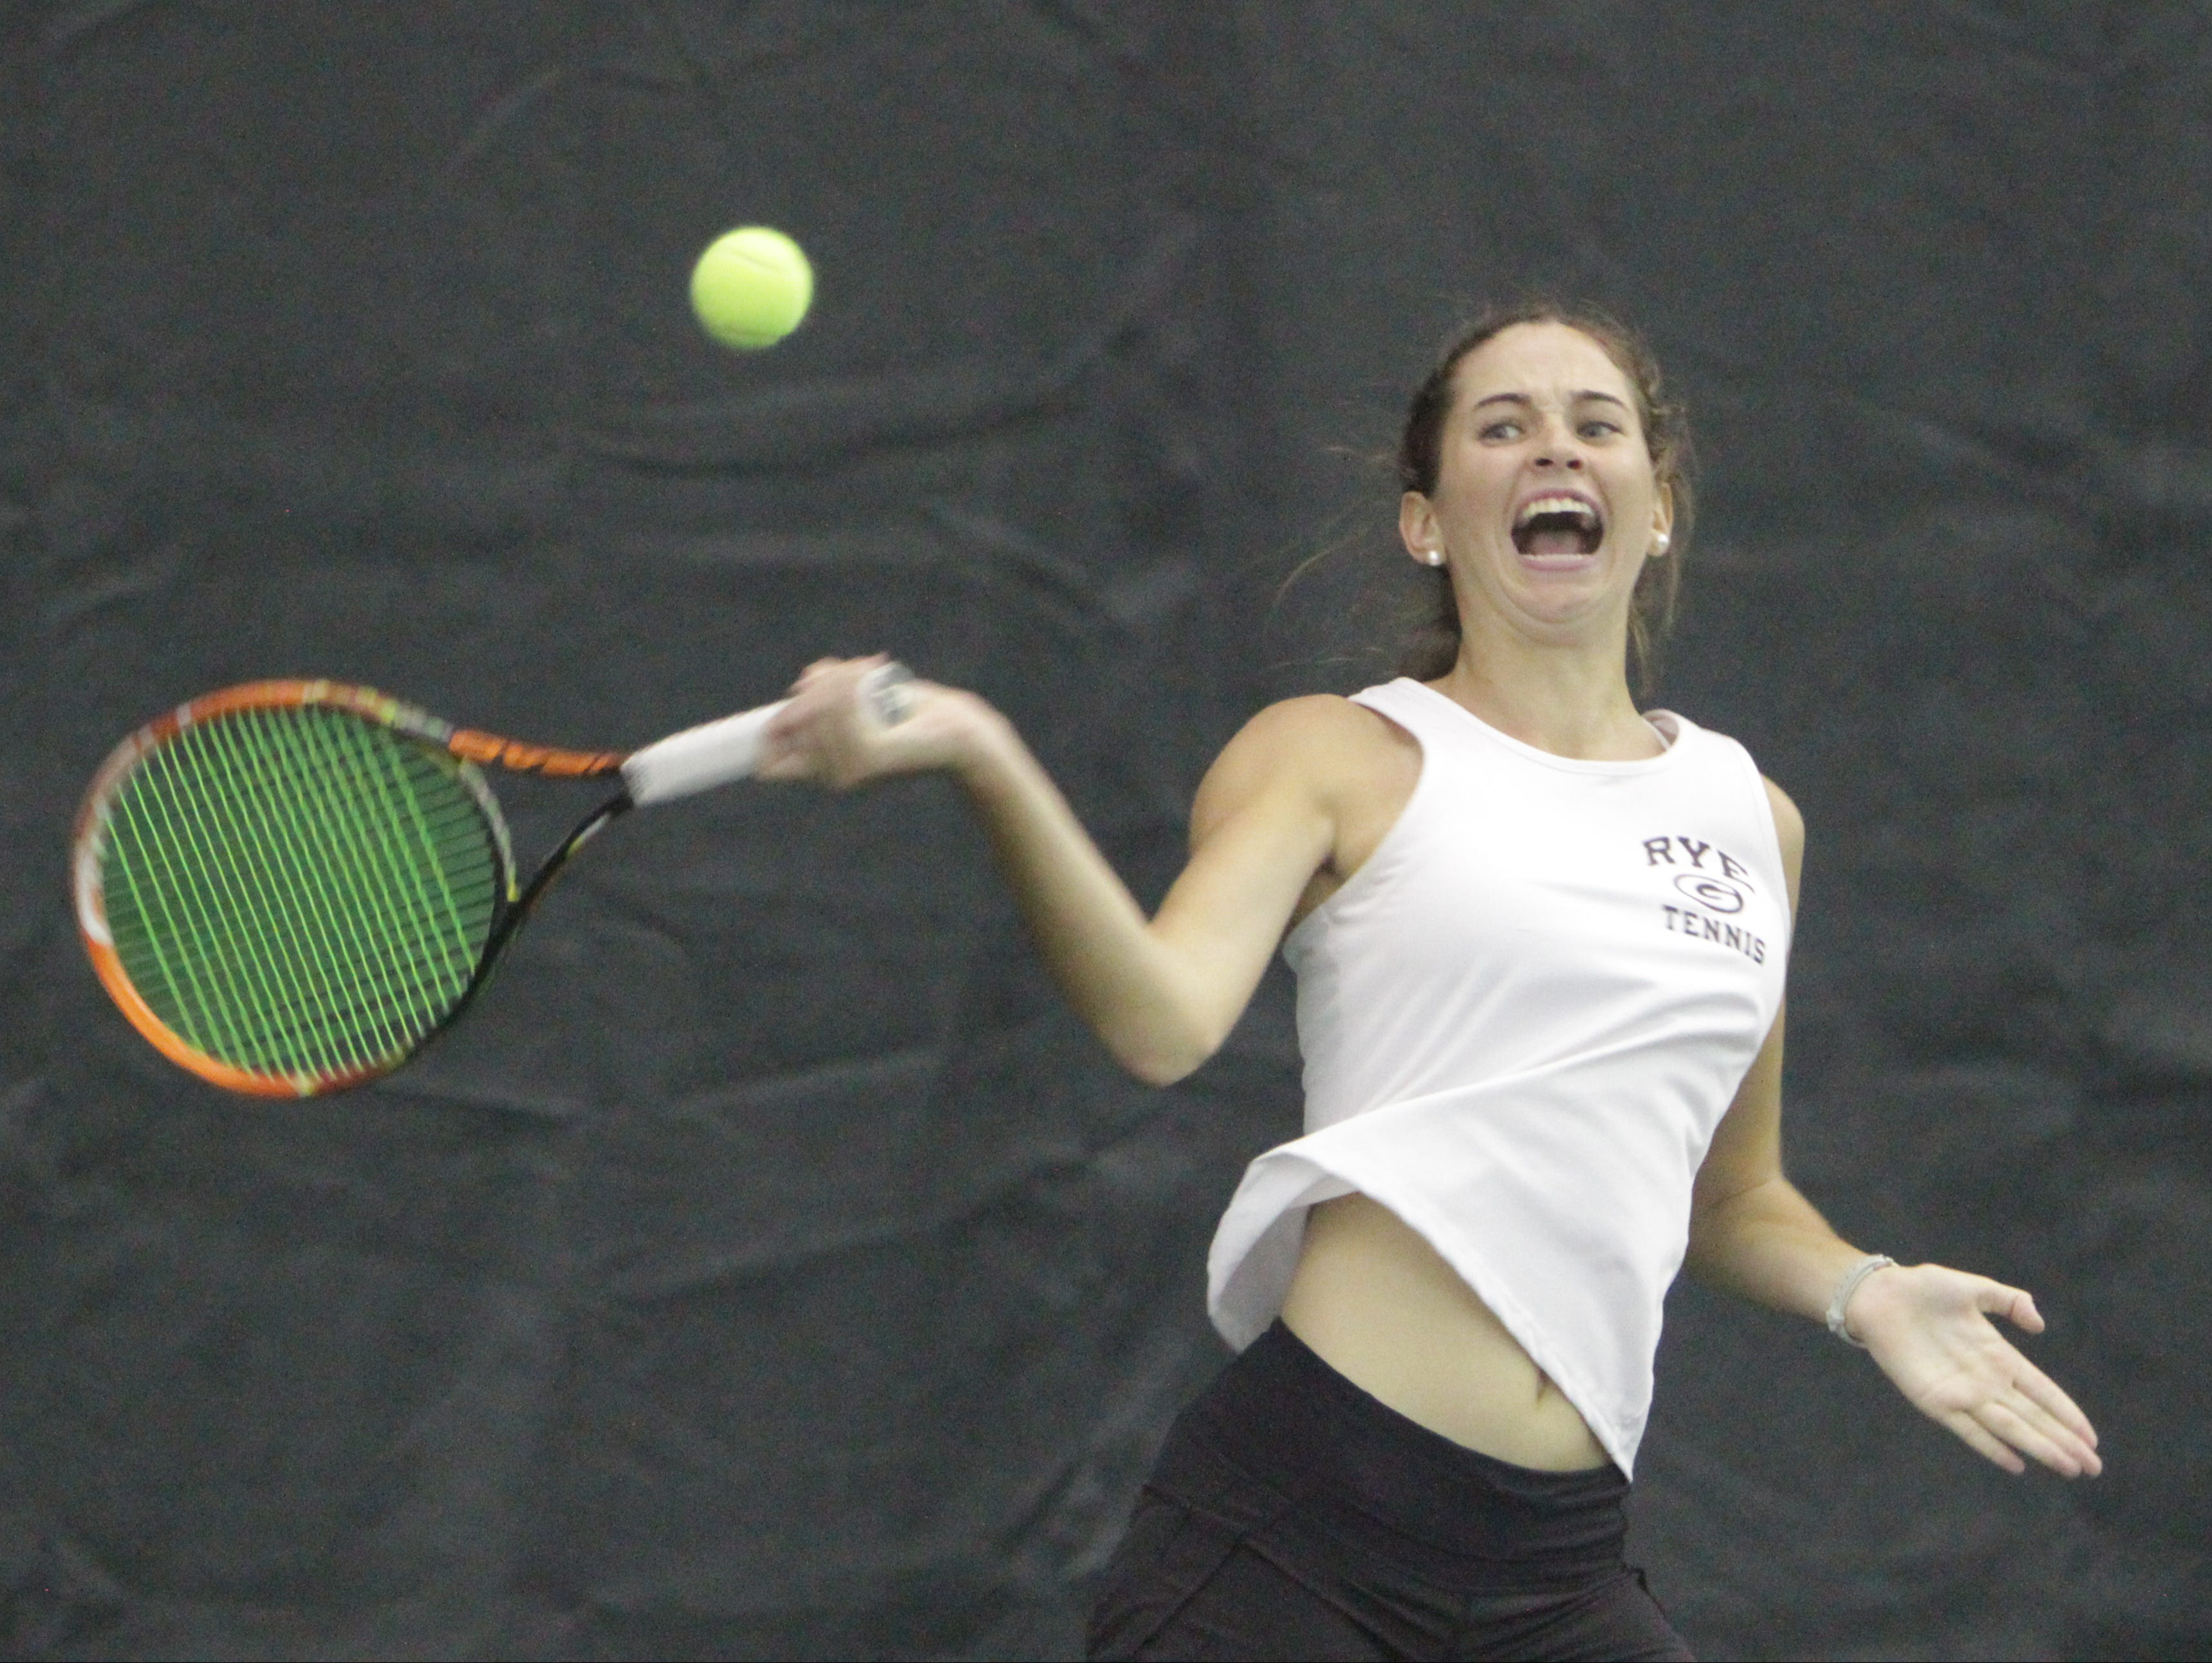 Rye's Nathalie Rodilosso returns a ball during the 2016 Section 1 Tennis Tournament finals at Sound Shore Indoor Tennis in Port Chester on Sunday, Oct. 23rd, 2016.